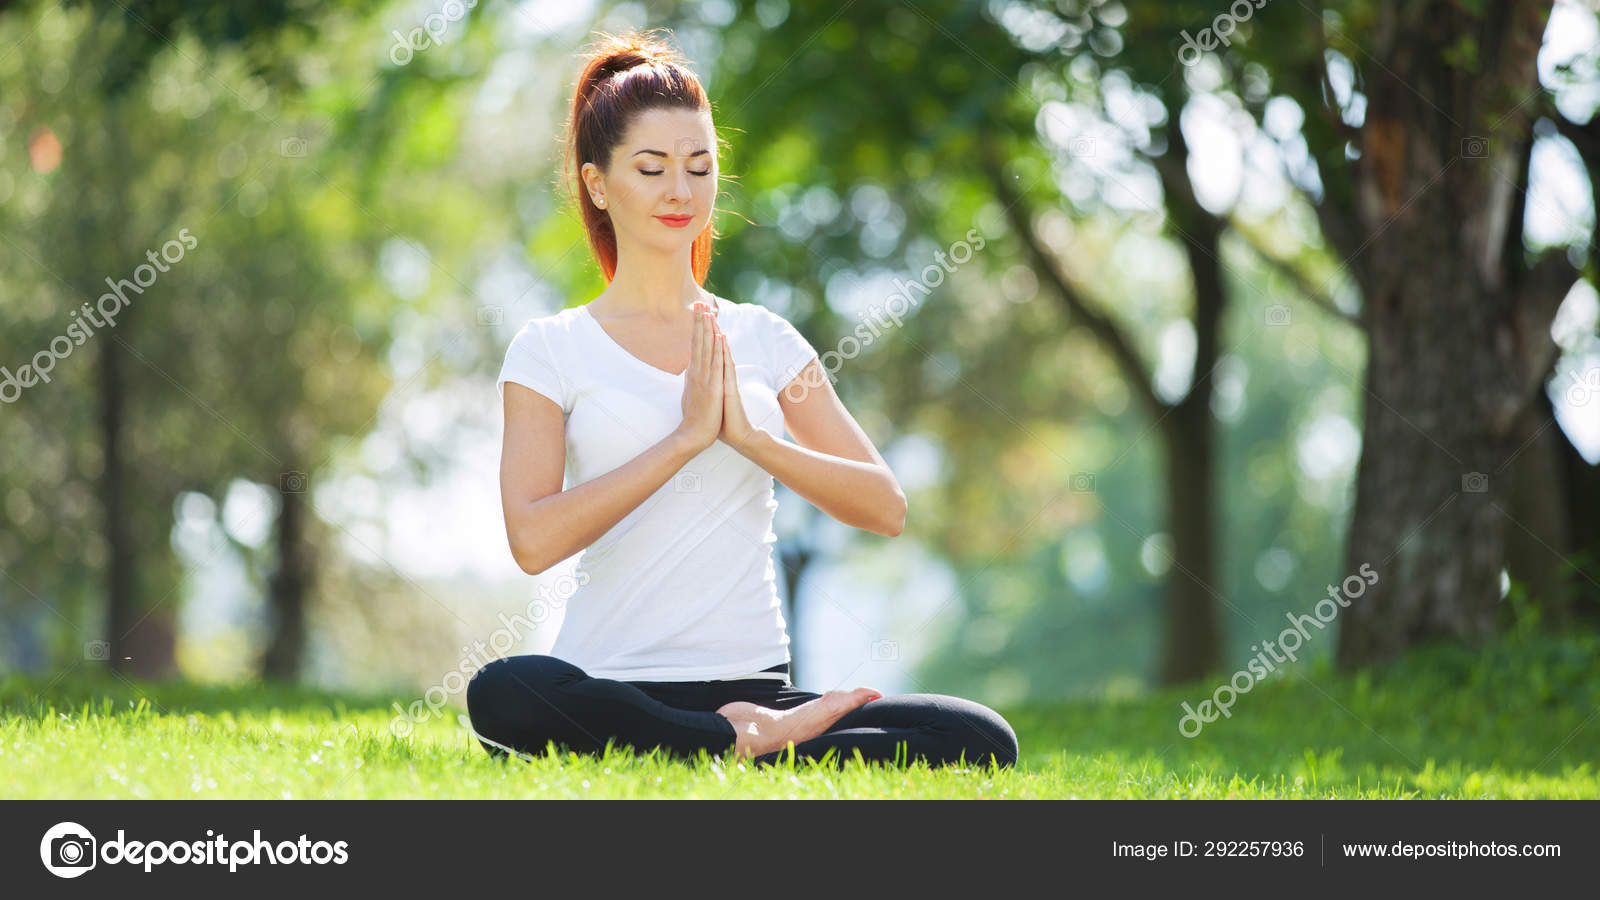 Yoga Outdoor Happy Woman Doing Yoga Exercises Meditate In The Park Yoga Meditation In Nature Concept Of Healthy Lifestyle And Relaxation Pretty Woman Practicing Yoga On The Grass Stock Photo C